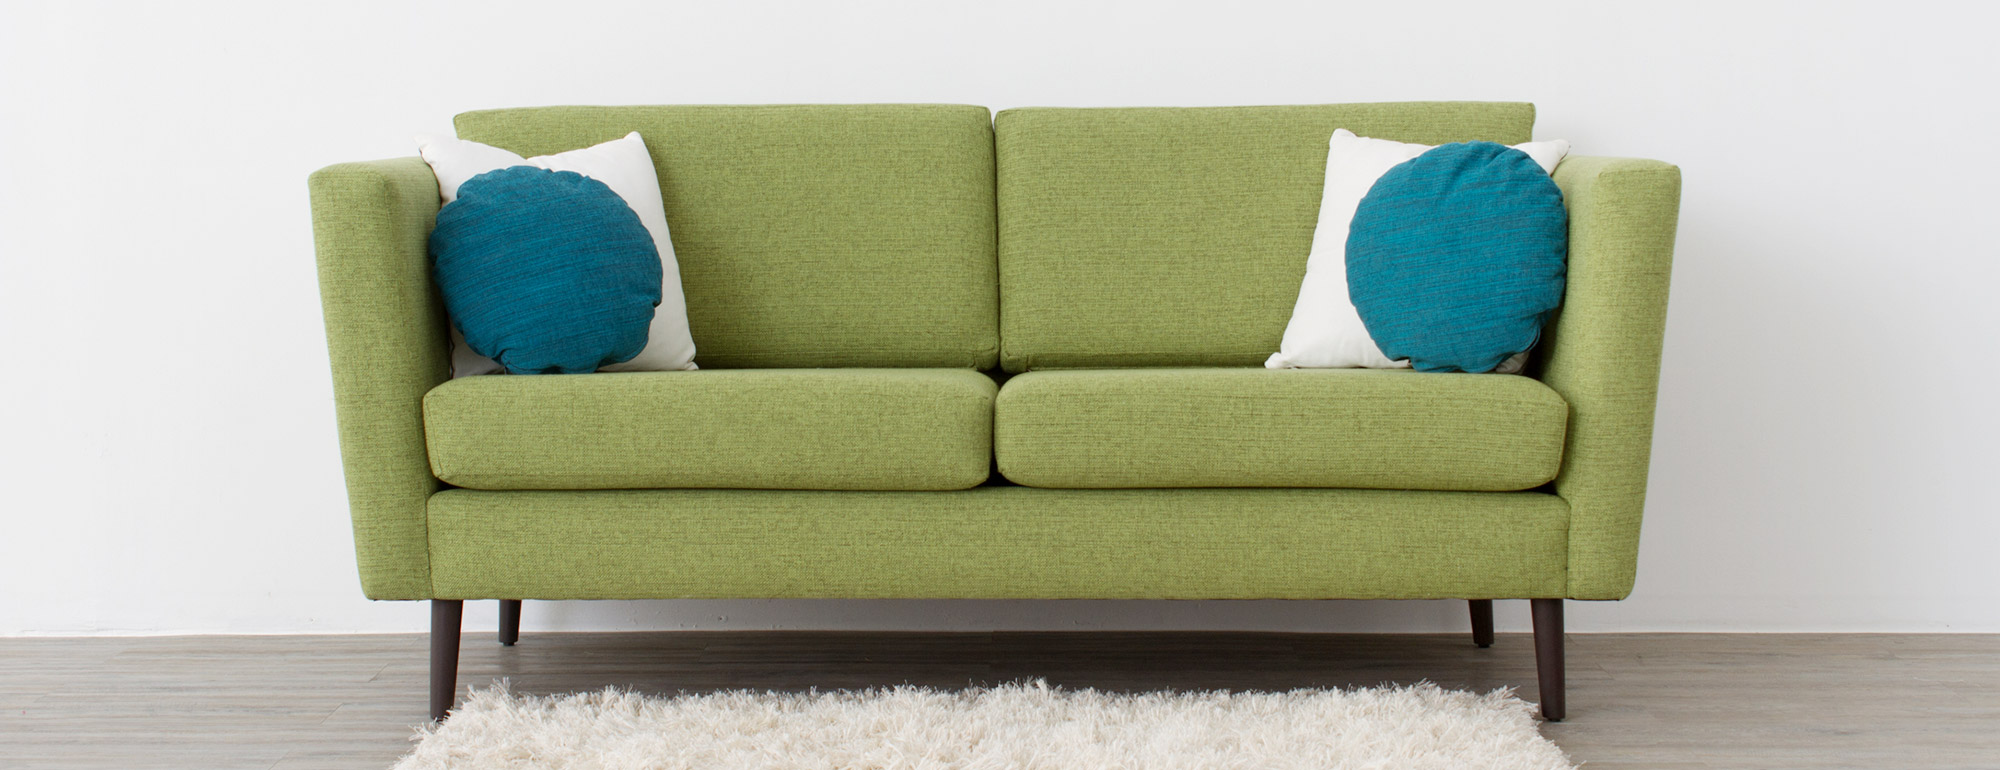 hero-deluna-loveseat-6